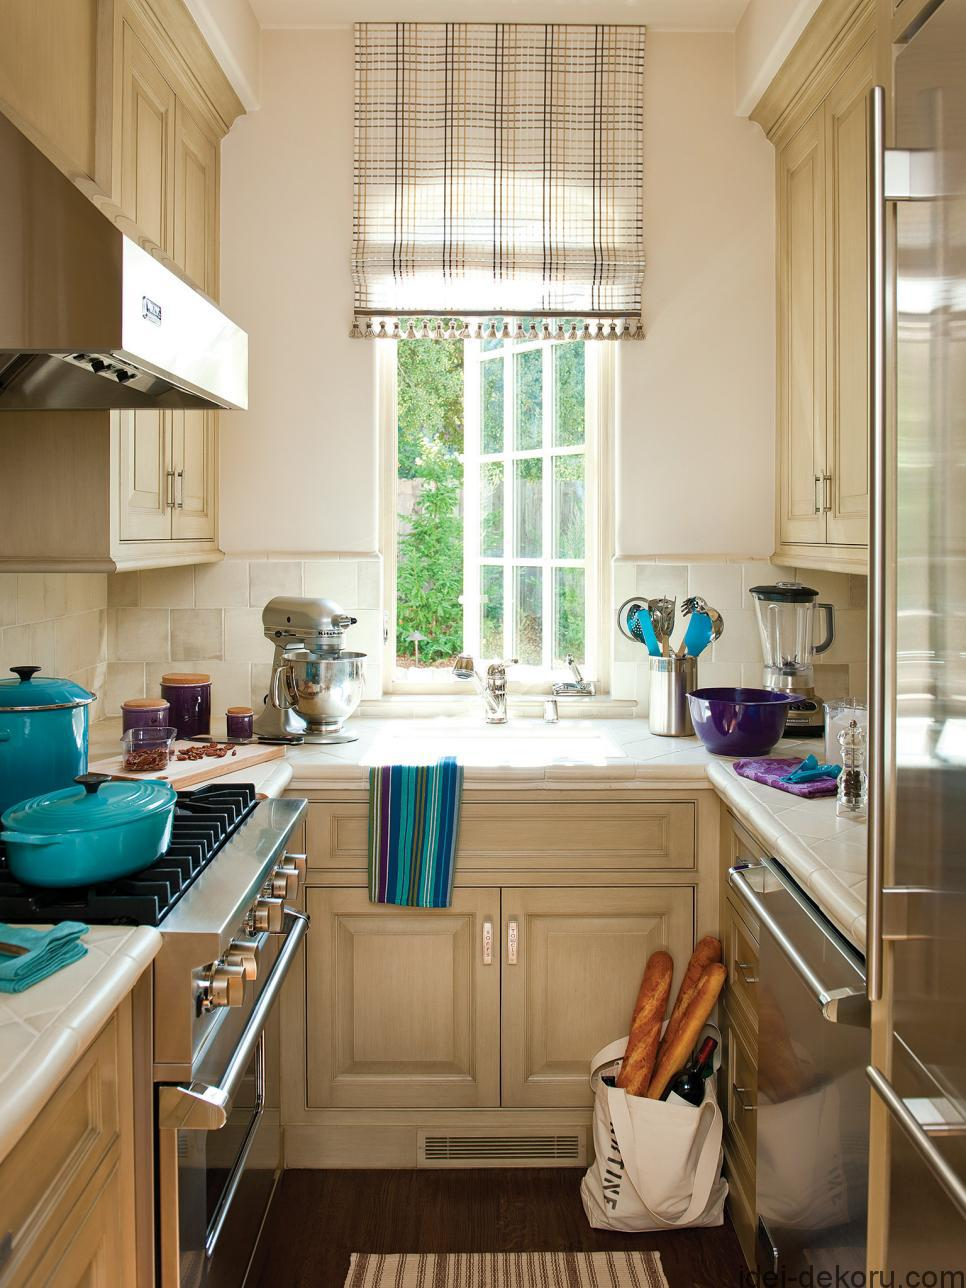 ci-allure-of-french-and-italian-decor_u-shaped-kitchen-pg50_3x4-jpg-rend-hgtvcom-966-1288